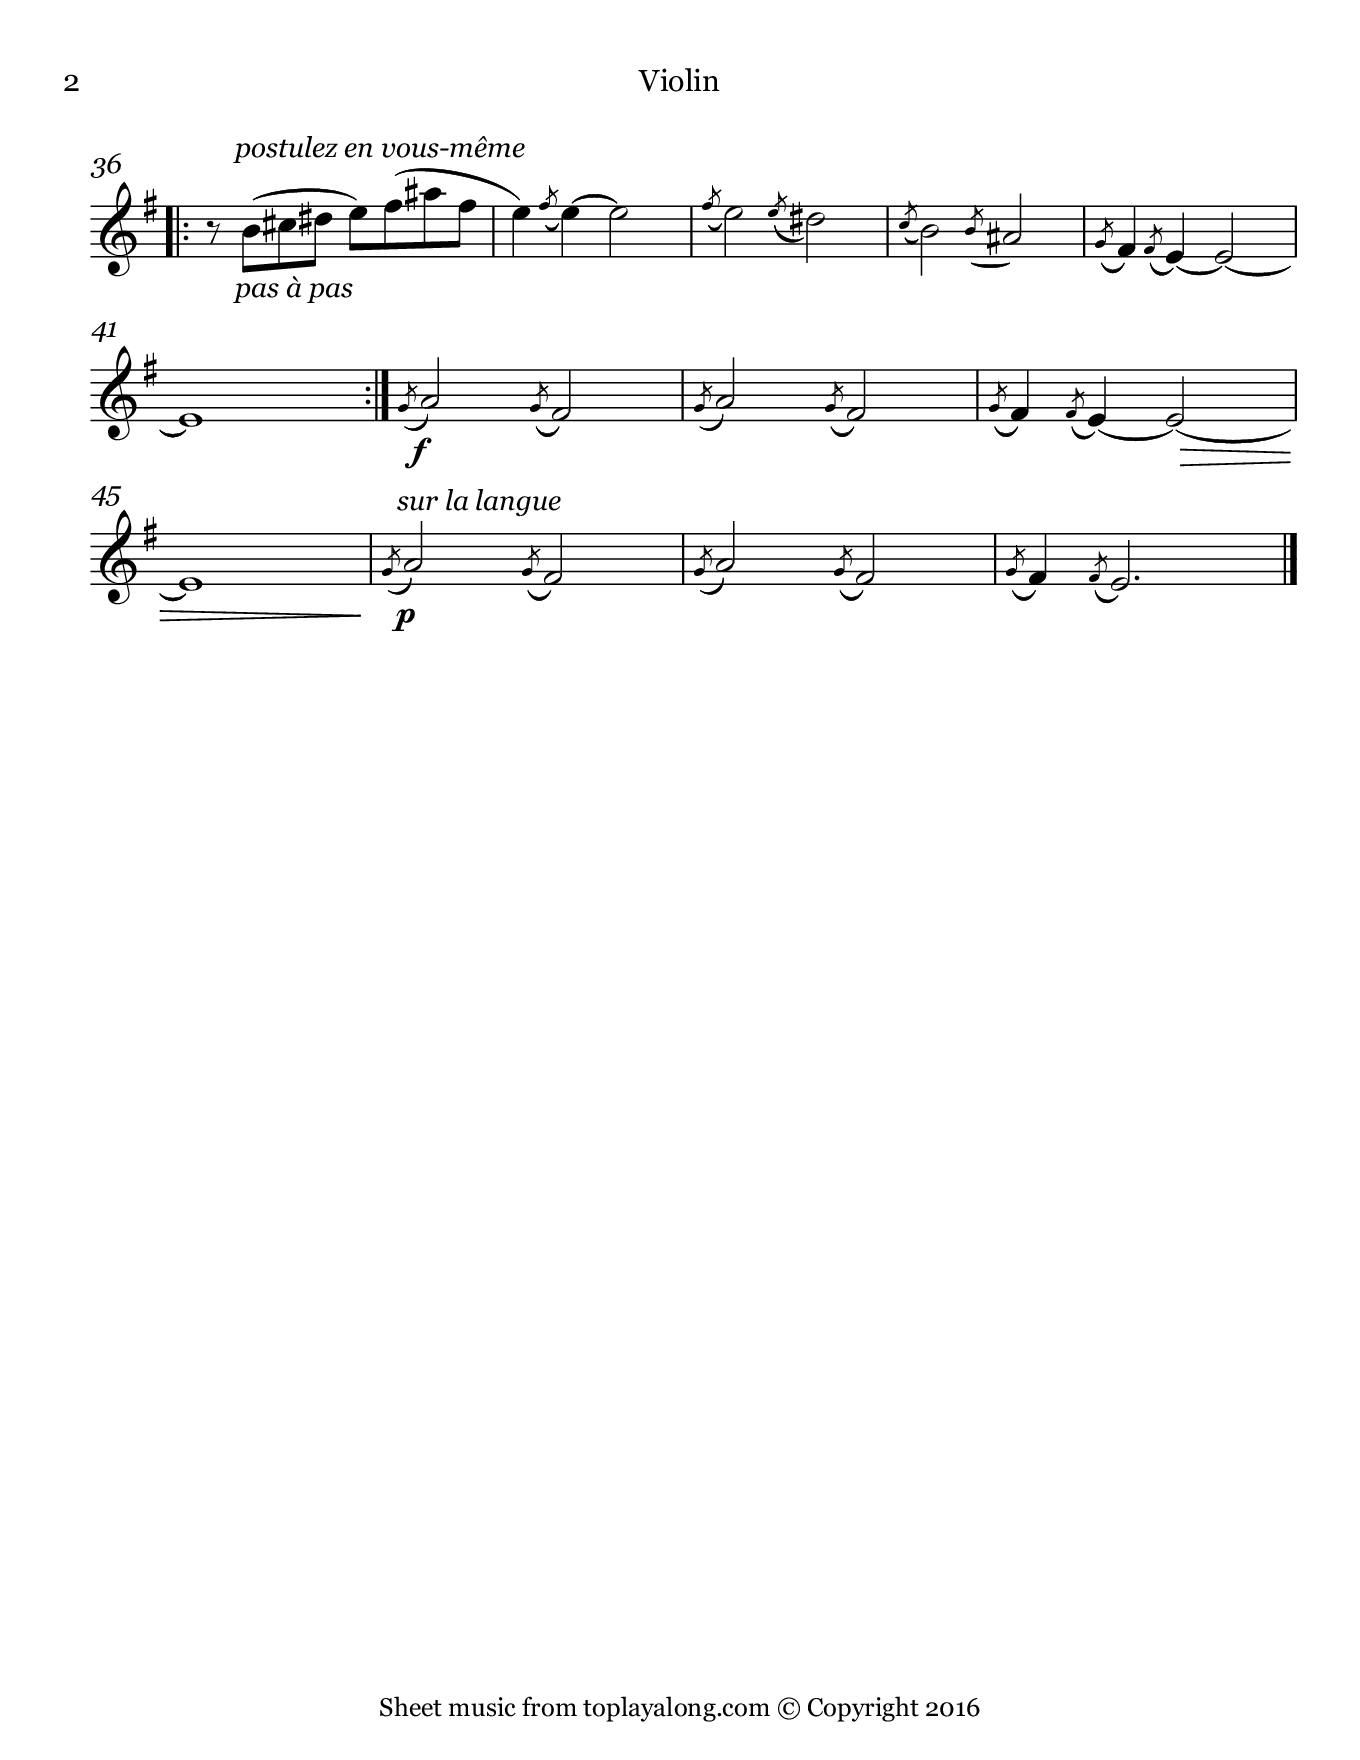 Gnossienne No. 1 by Satie. Sheet music for Violin, page 2.